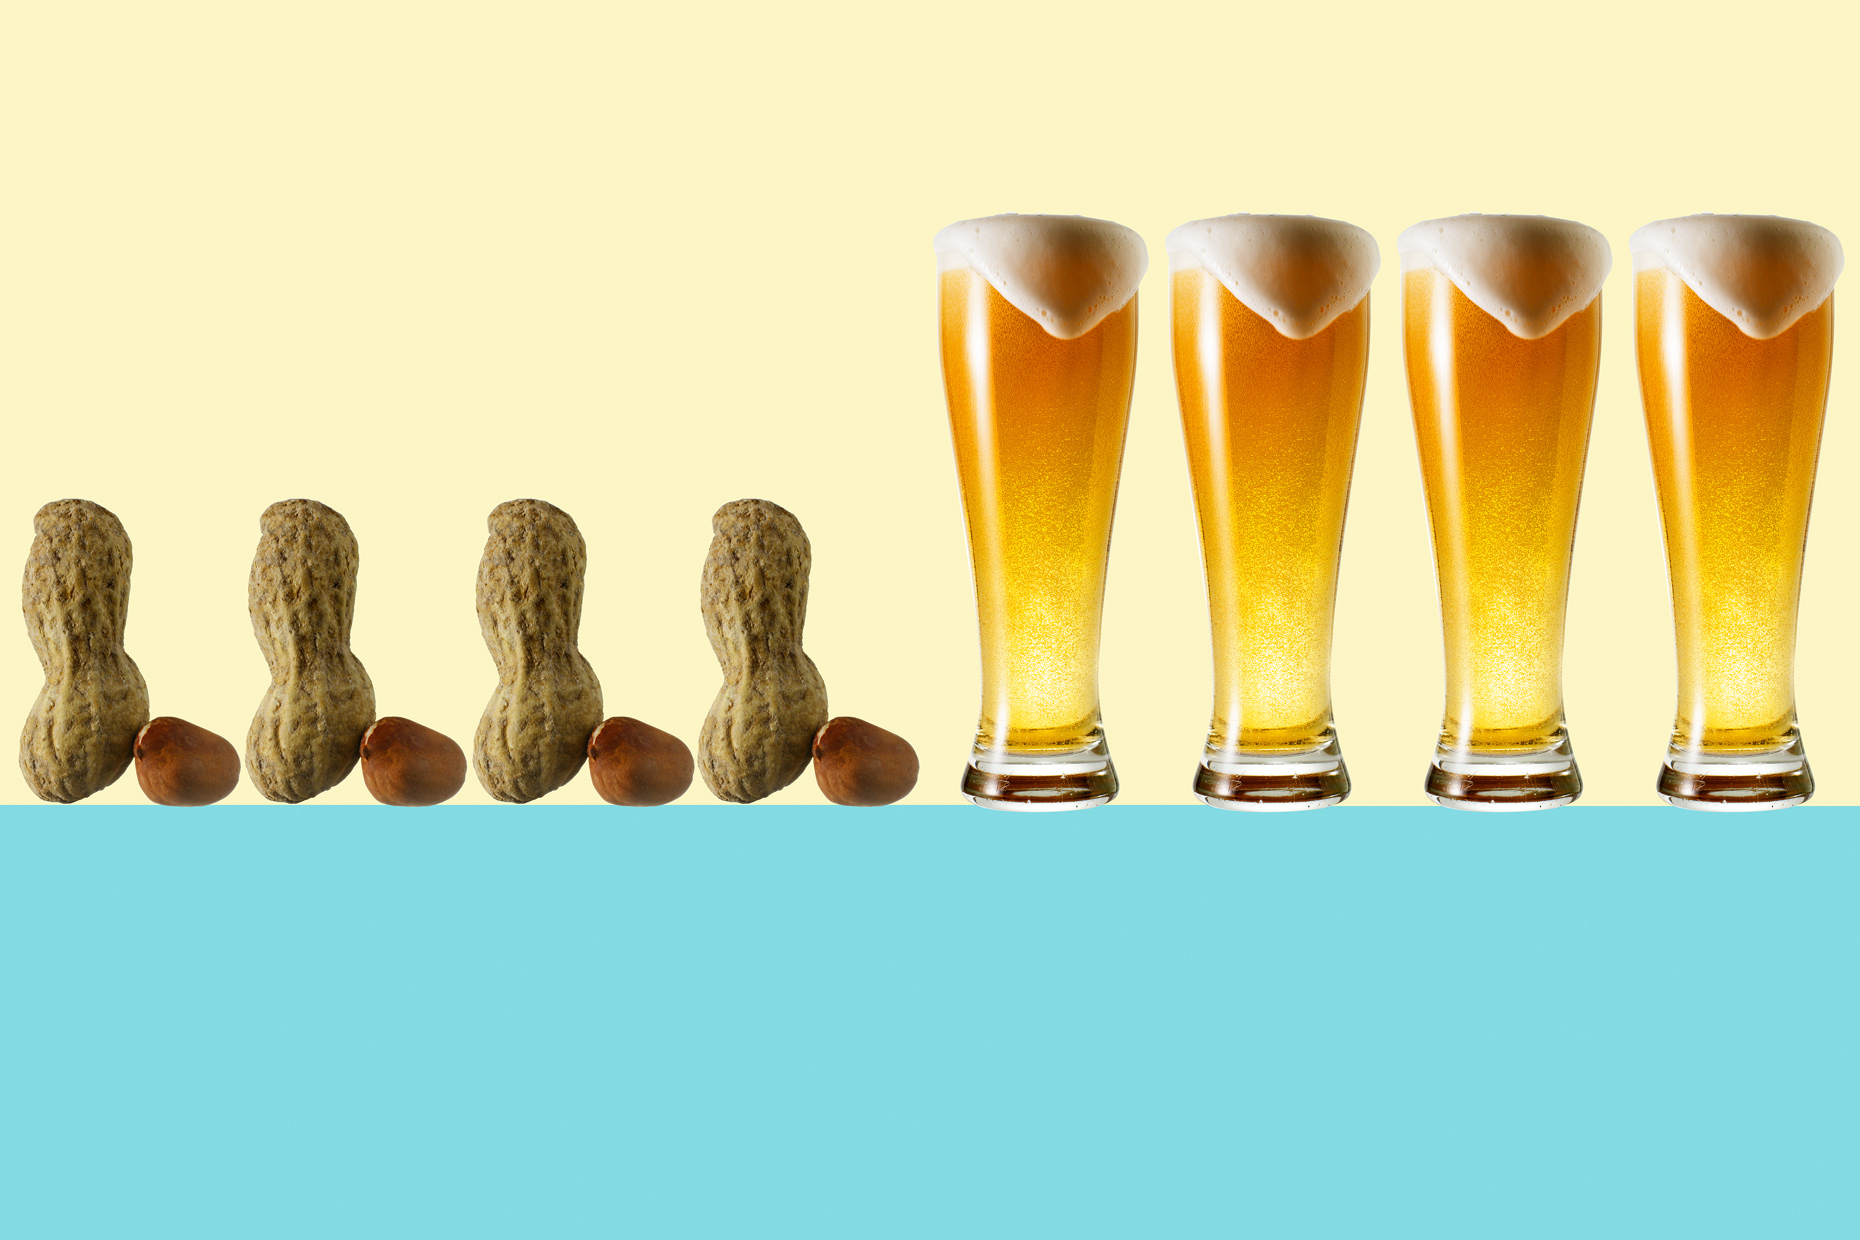 layout_peanut-beer